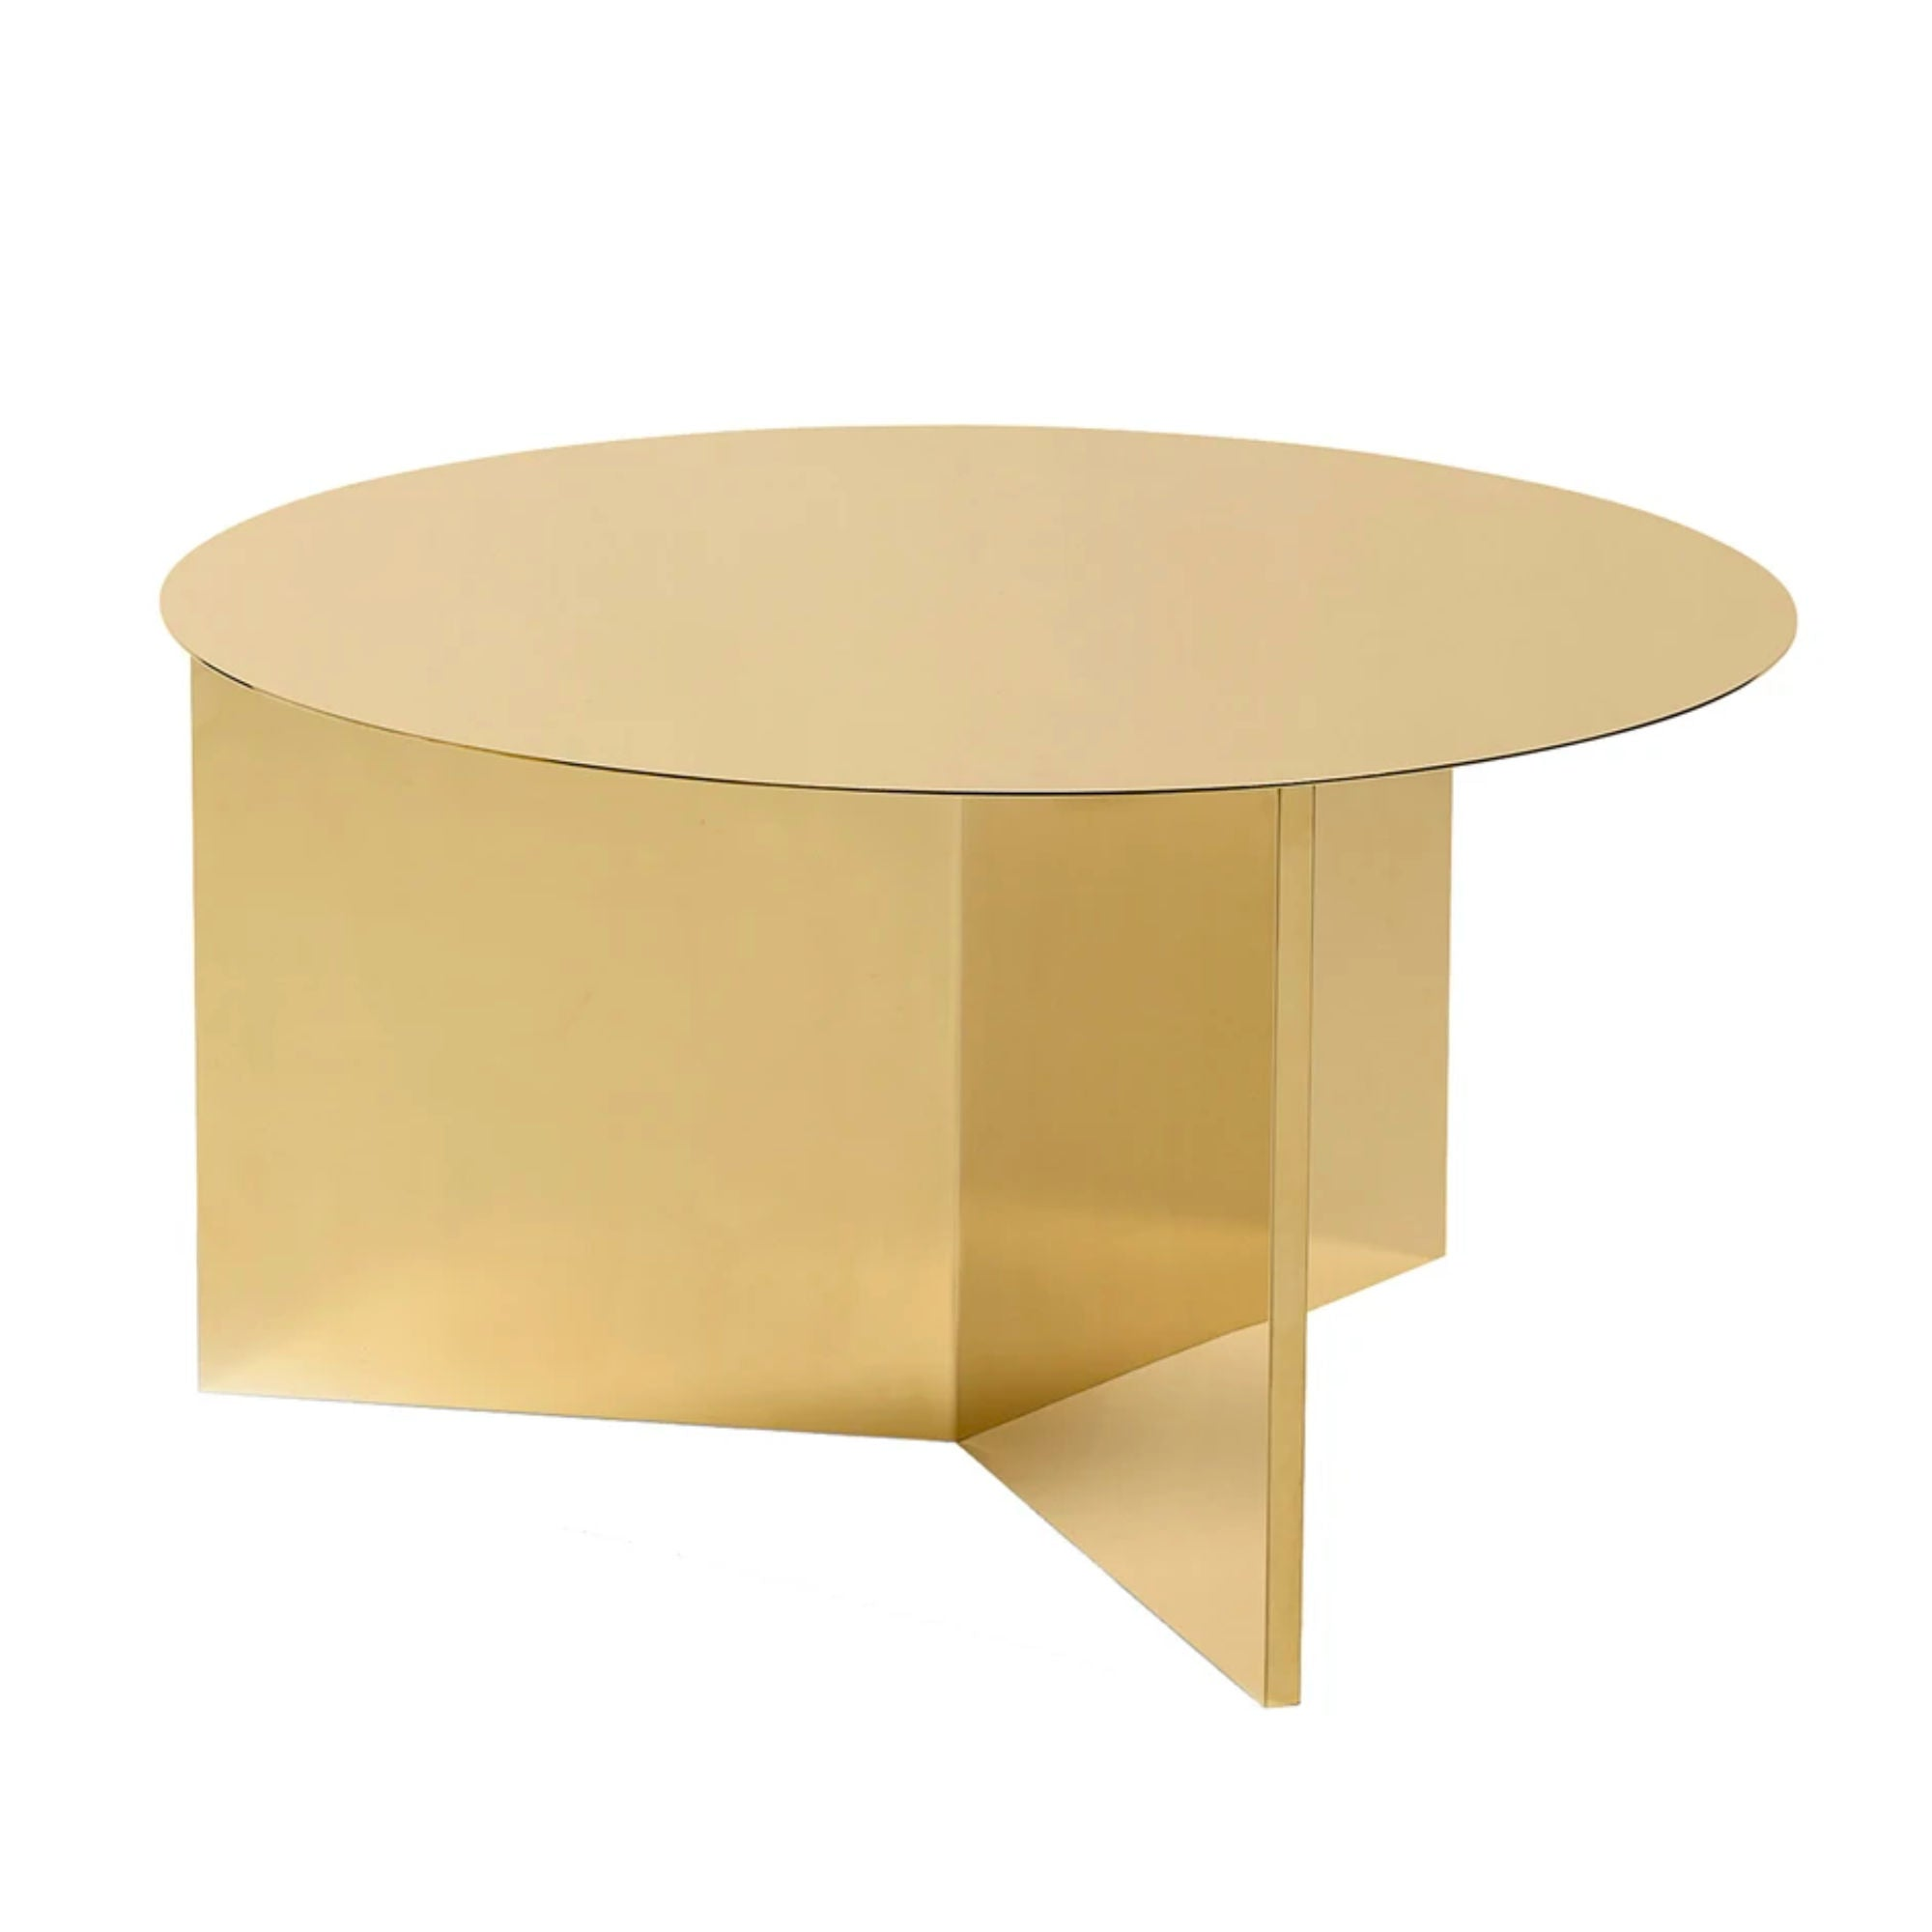 Hay Slit Coffee Table Round XL Φ65 , Brass